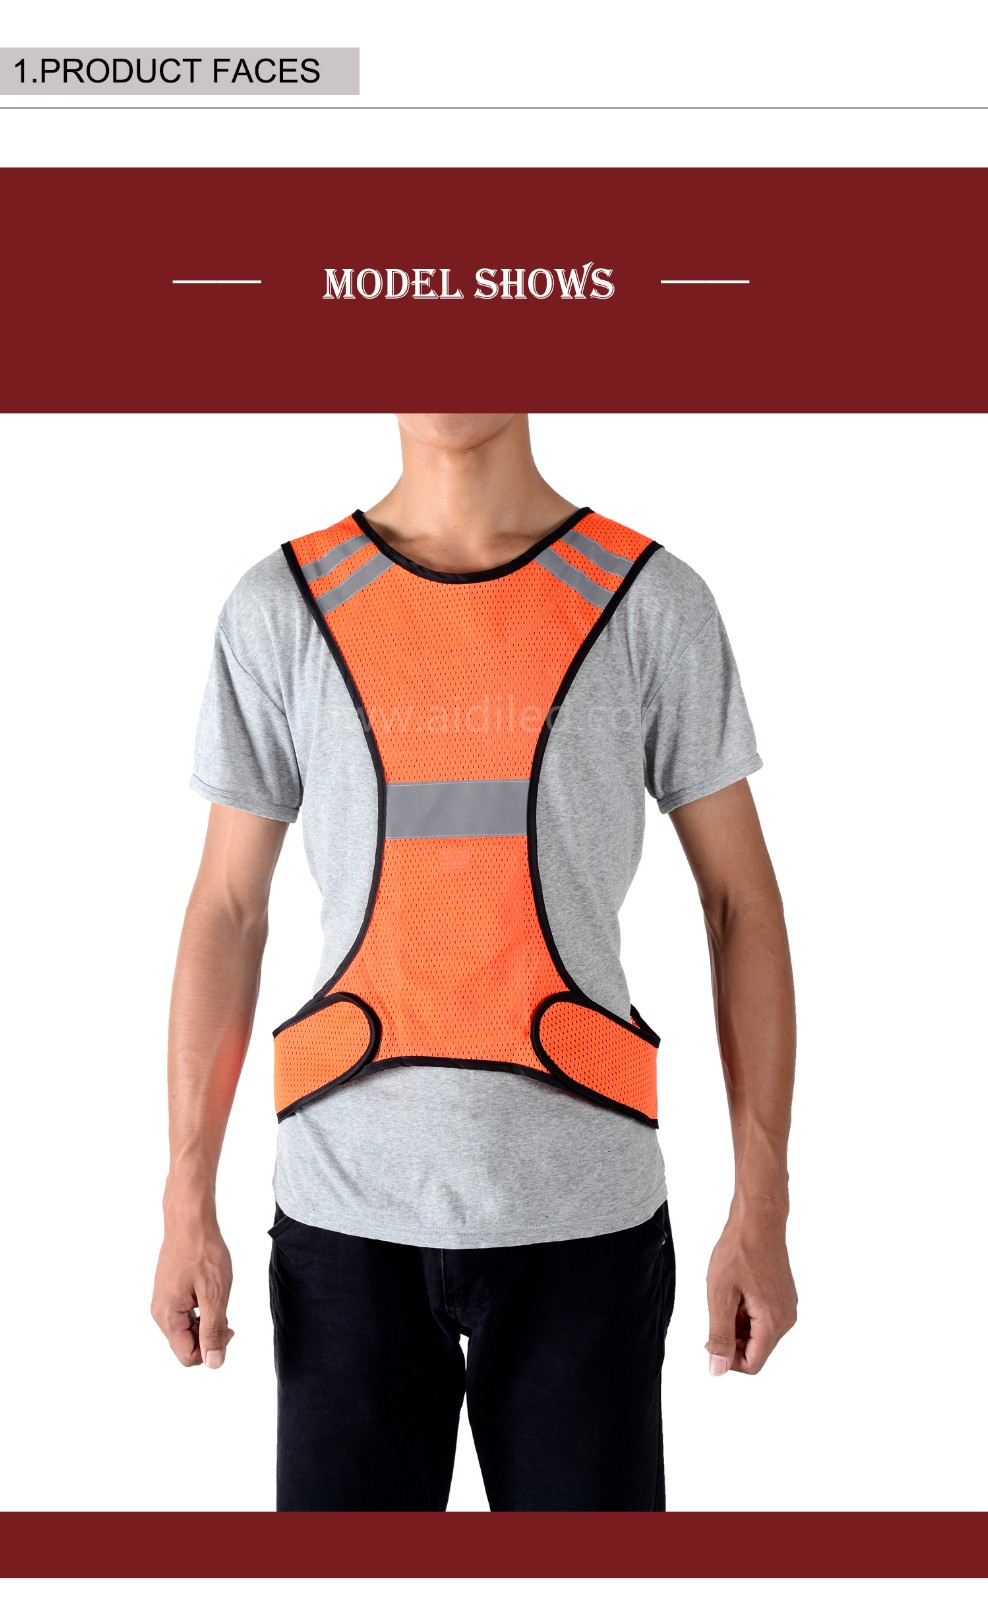 -| Led Outdoor Sports Safety Vest Aidi-s11 - Shenghong-2